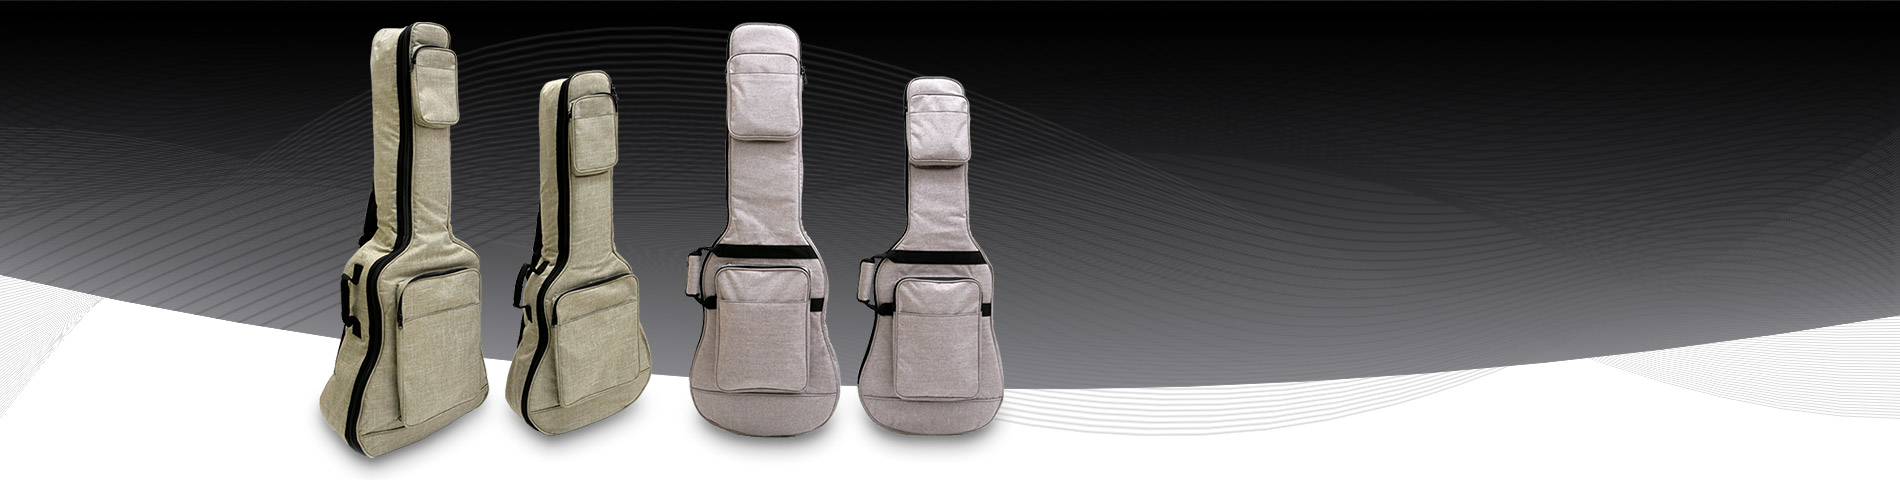 Professional Guitar Bag Manufacturer